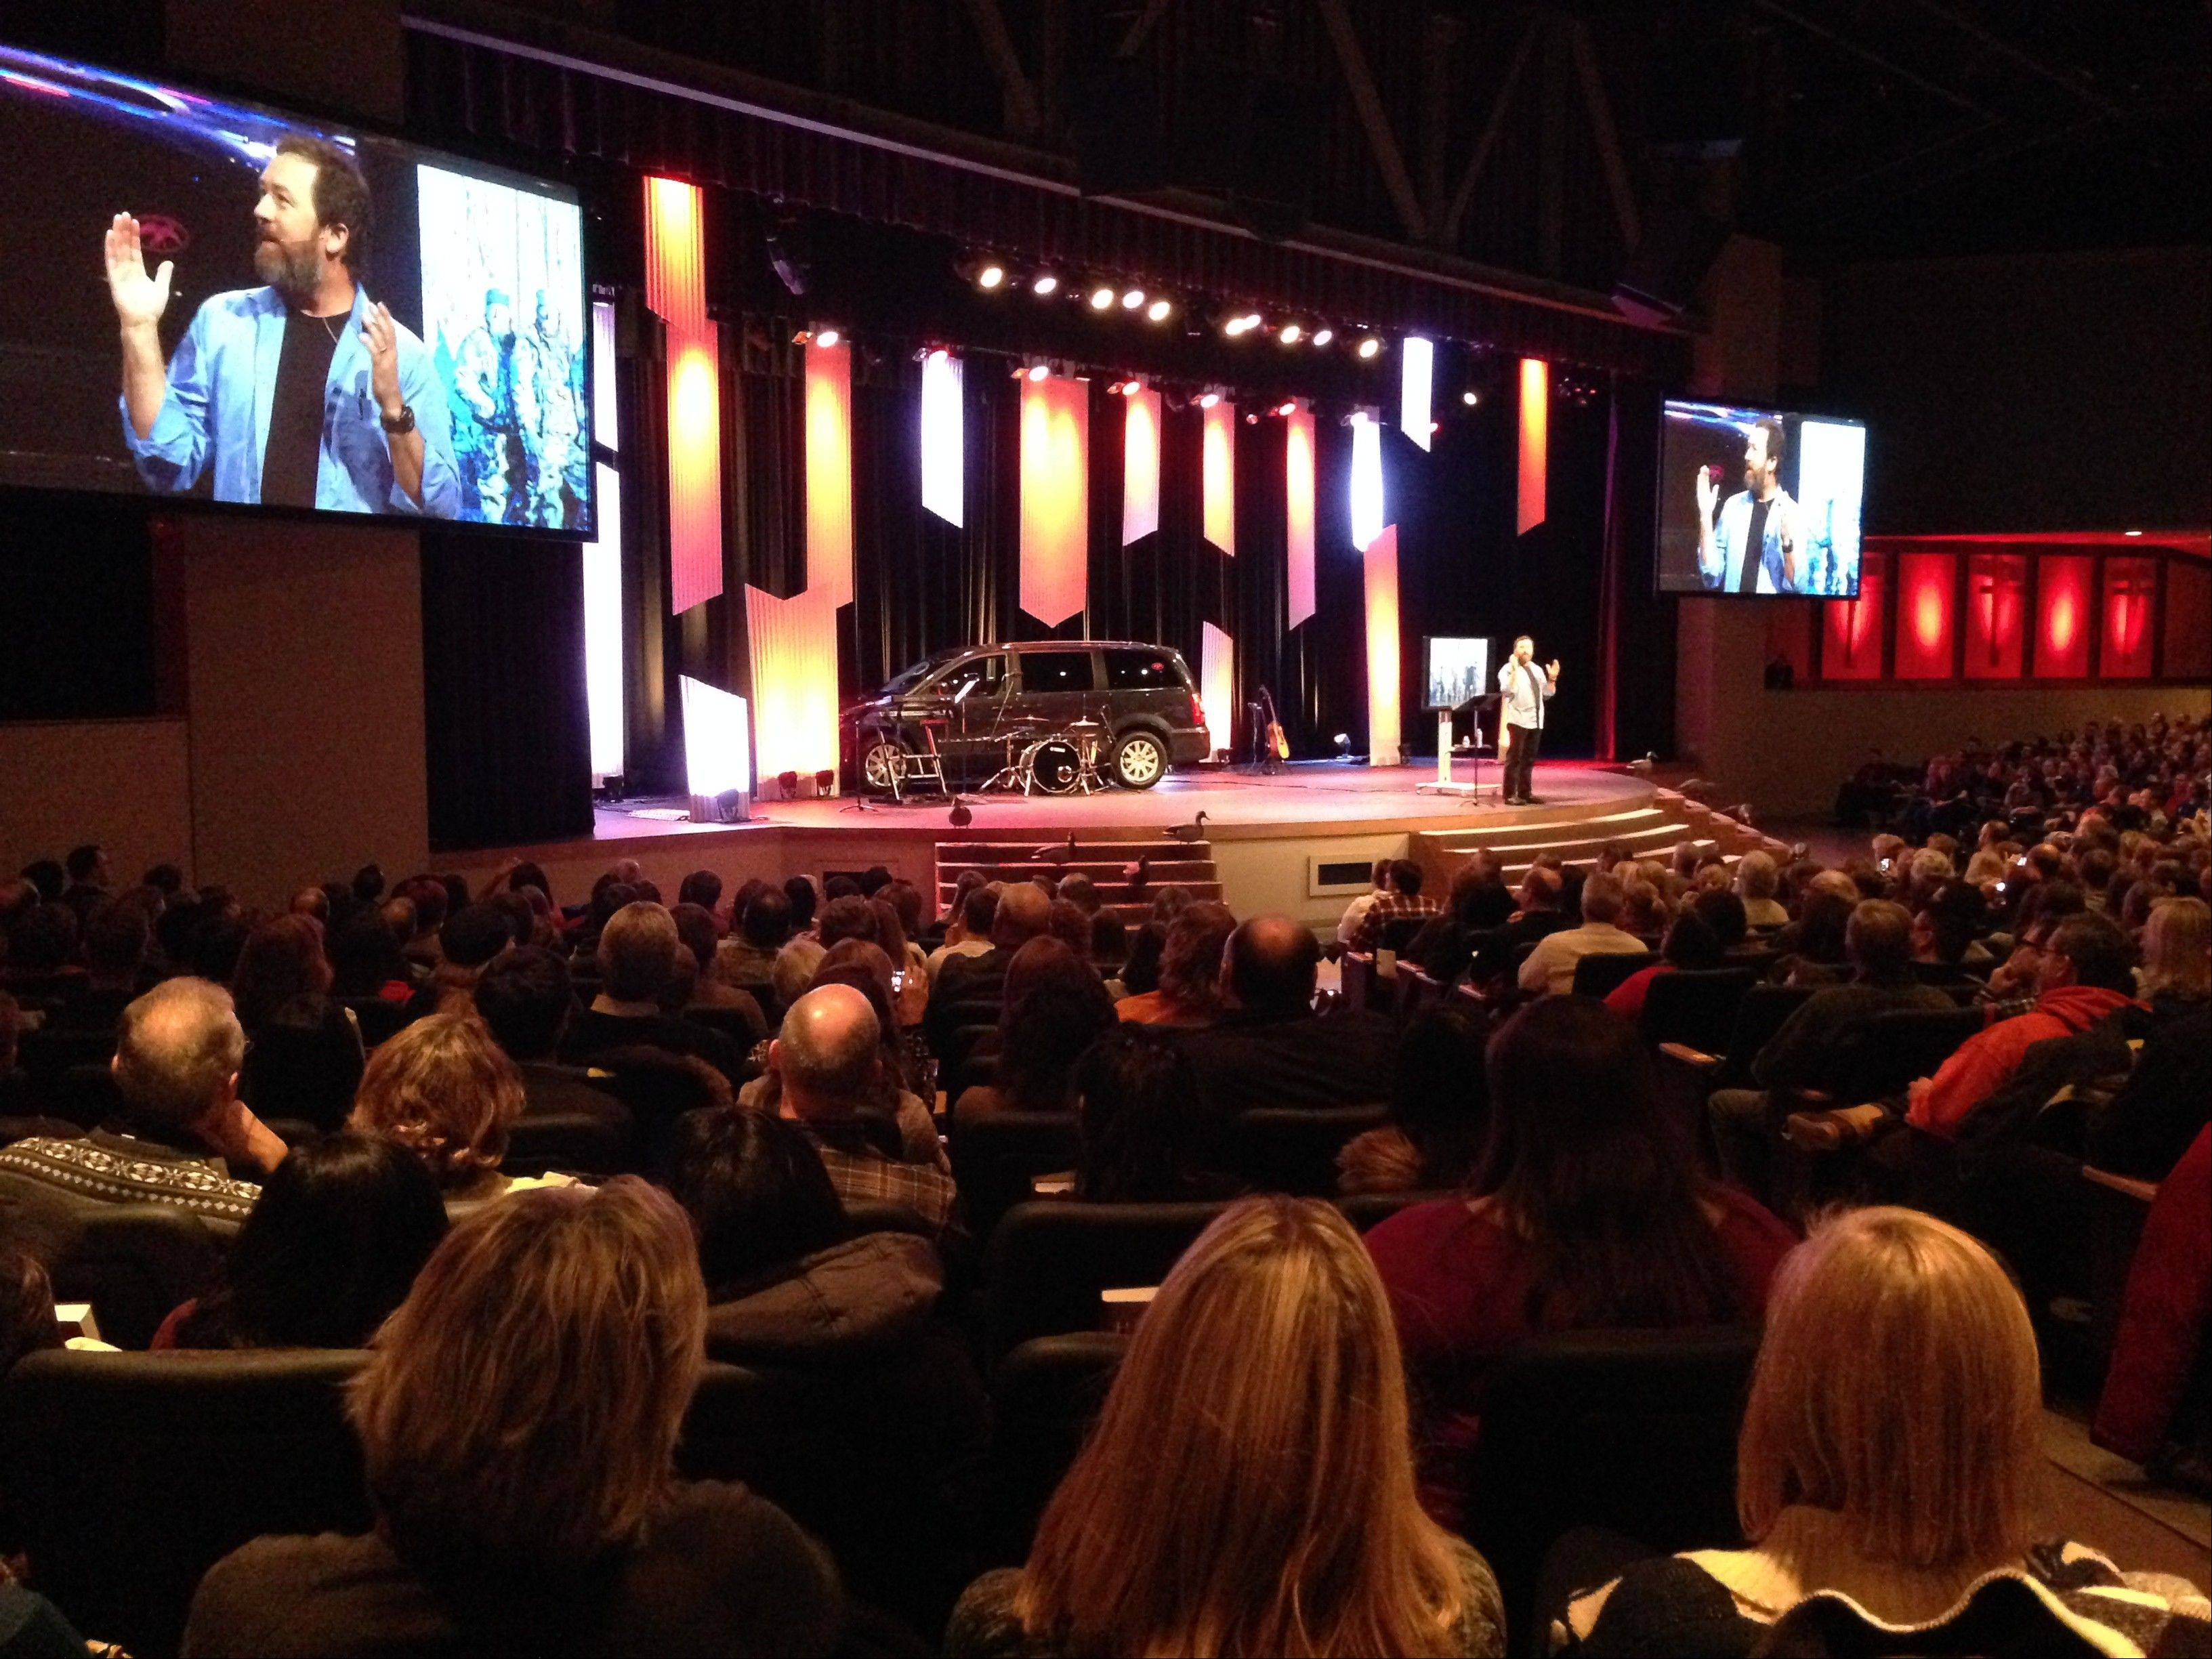 �Duck Dynasty� star Alan Robertson speaks to a packed house Saturday night at Compass Church in Naperville.